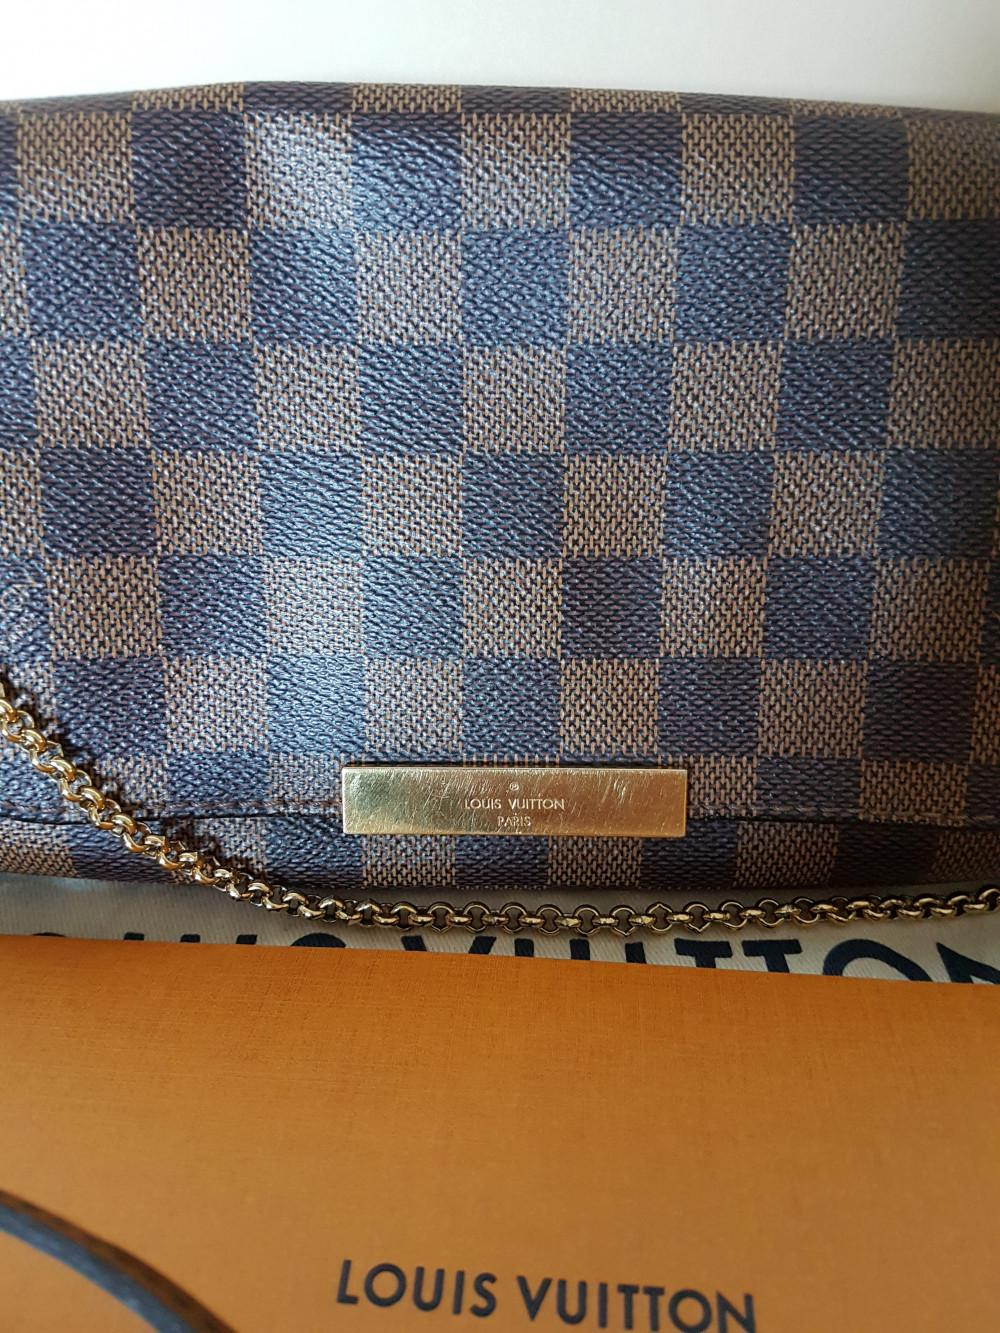 louis-vuitton-95576-1-347928